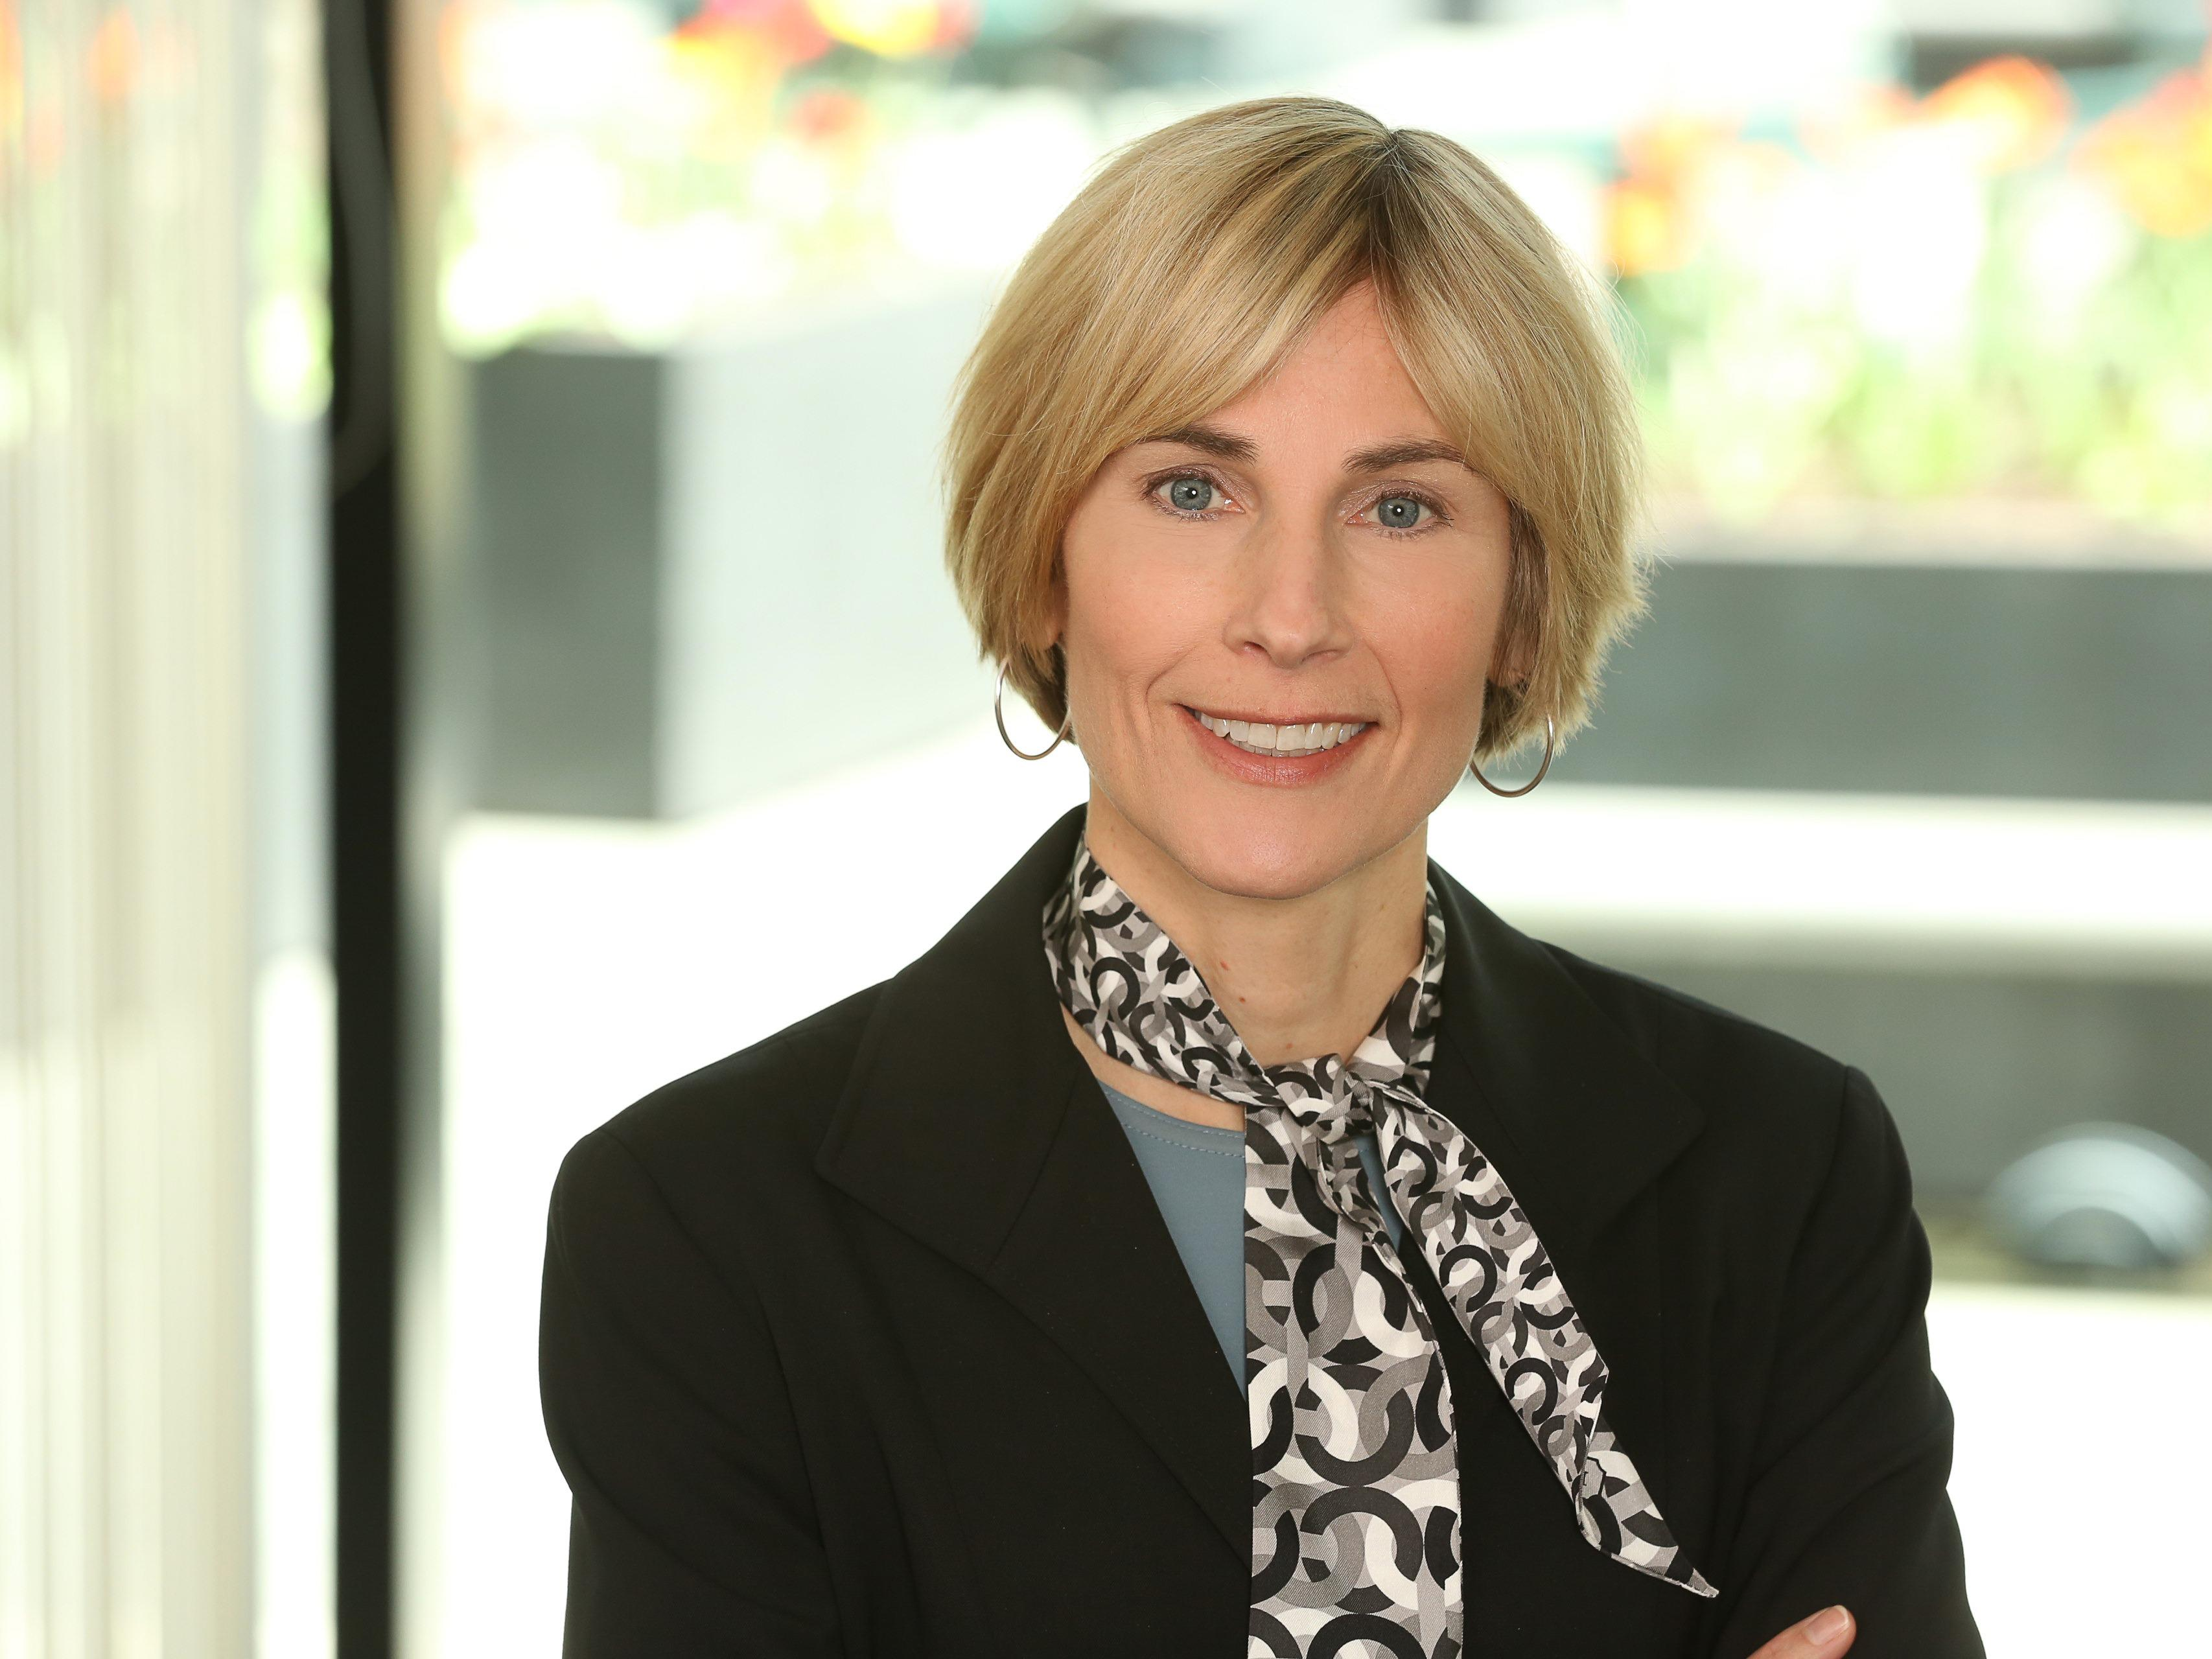 Xerox CFO Kathryn Mikells is stepping down to take another job